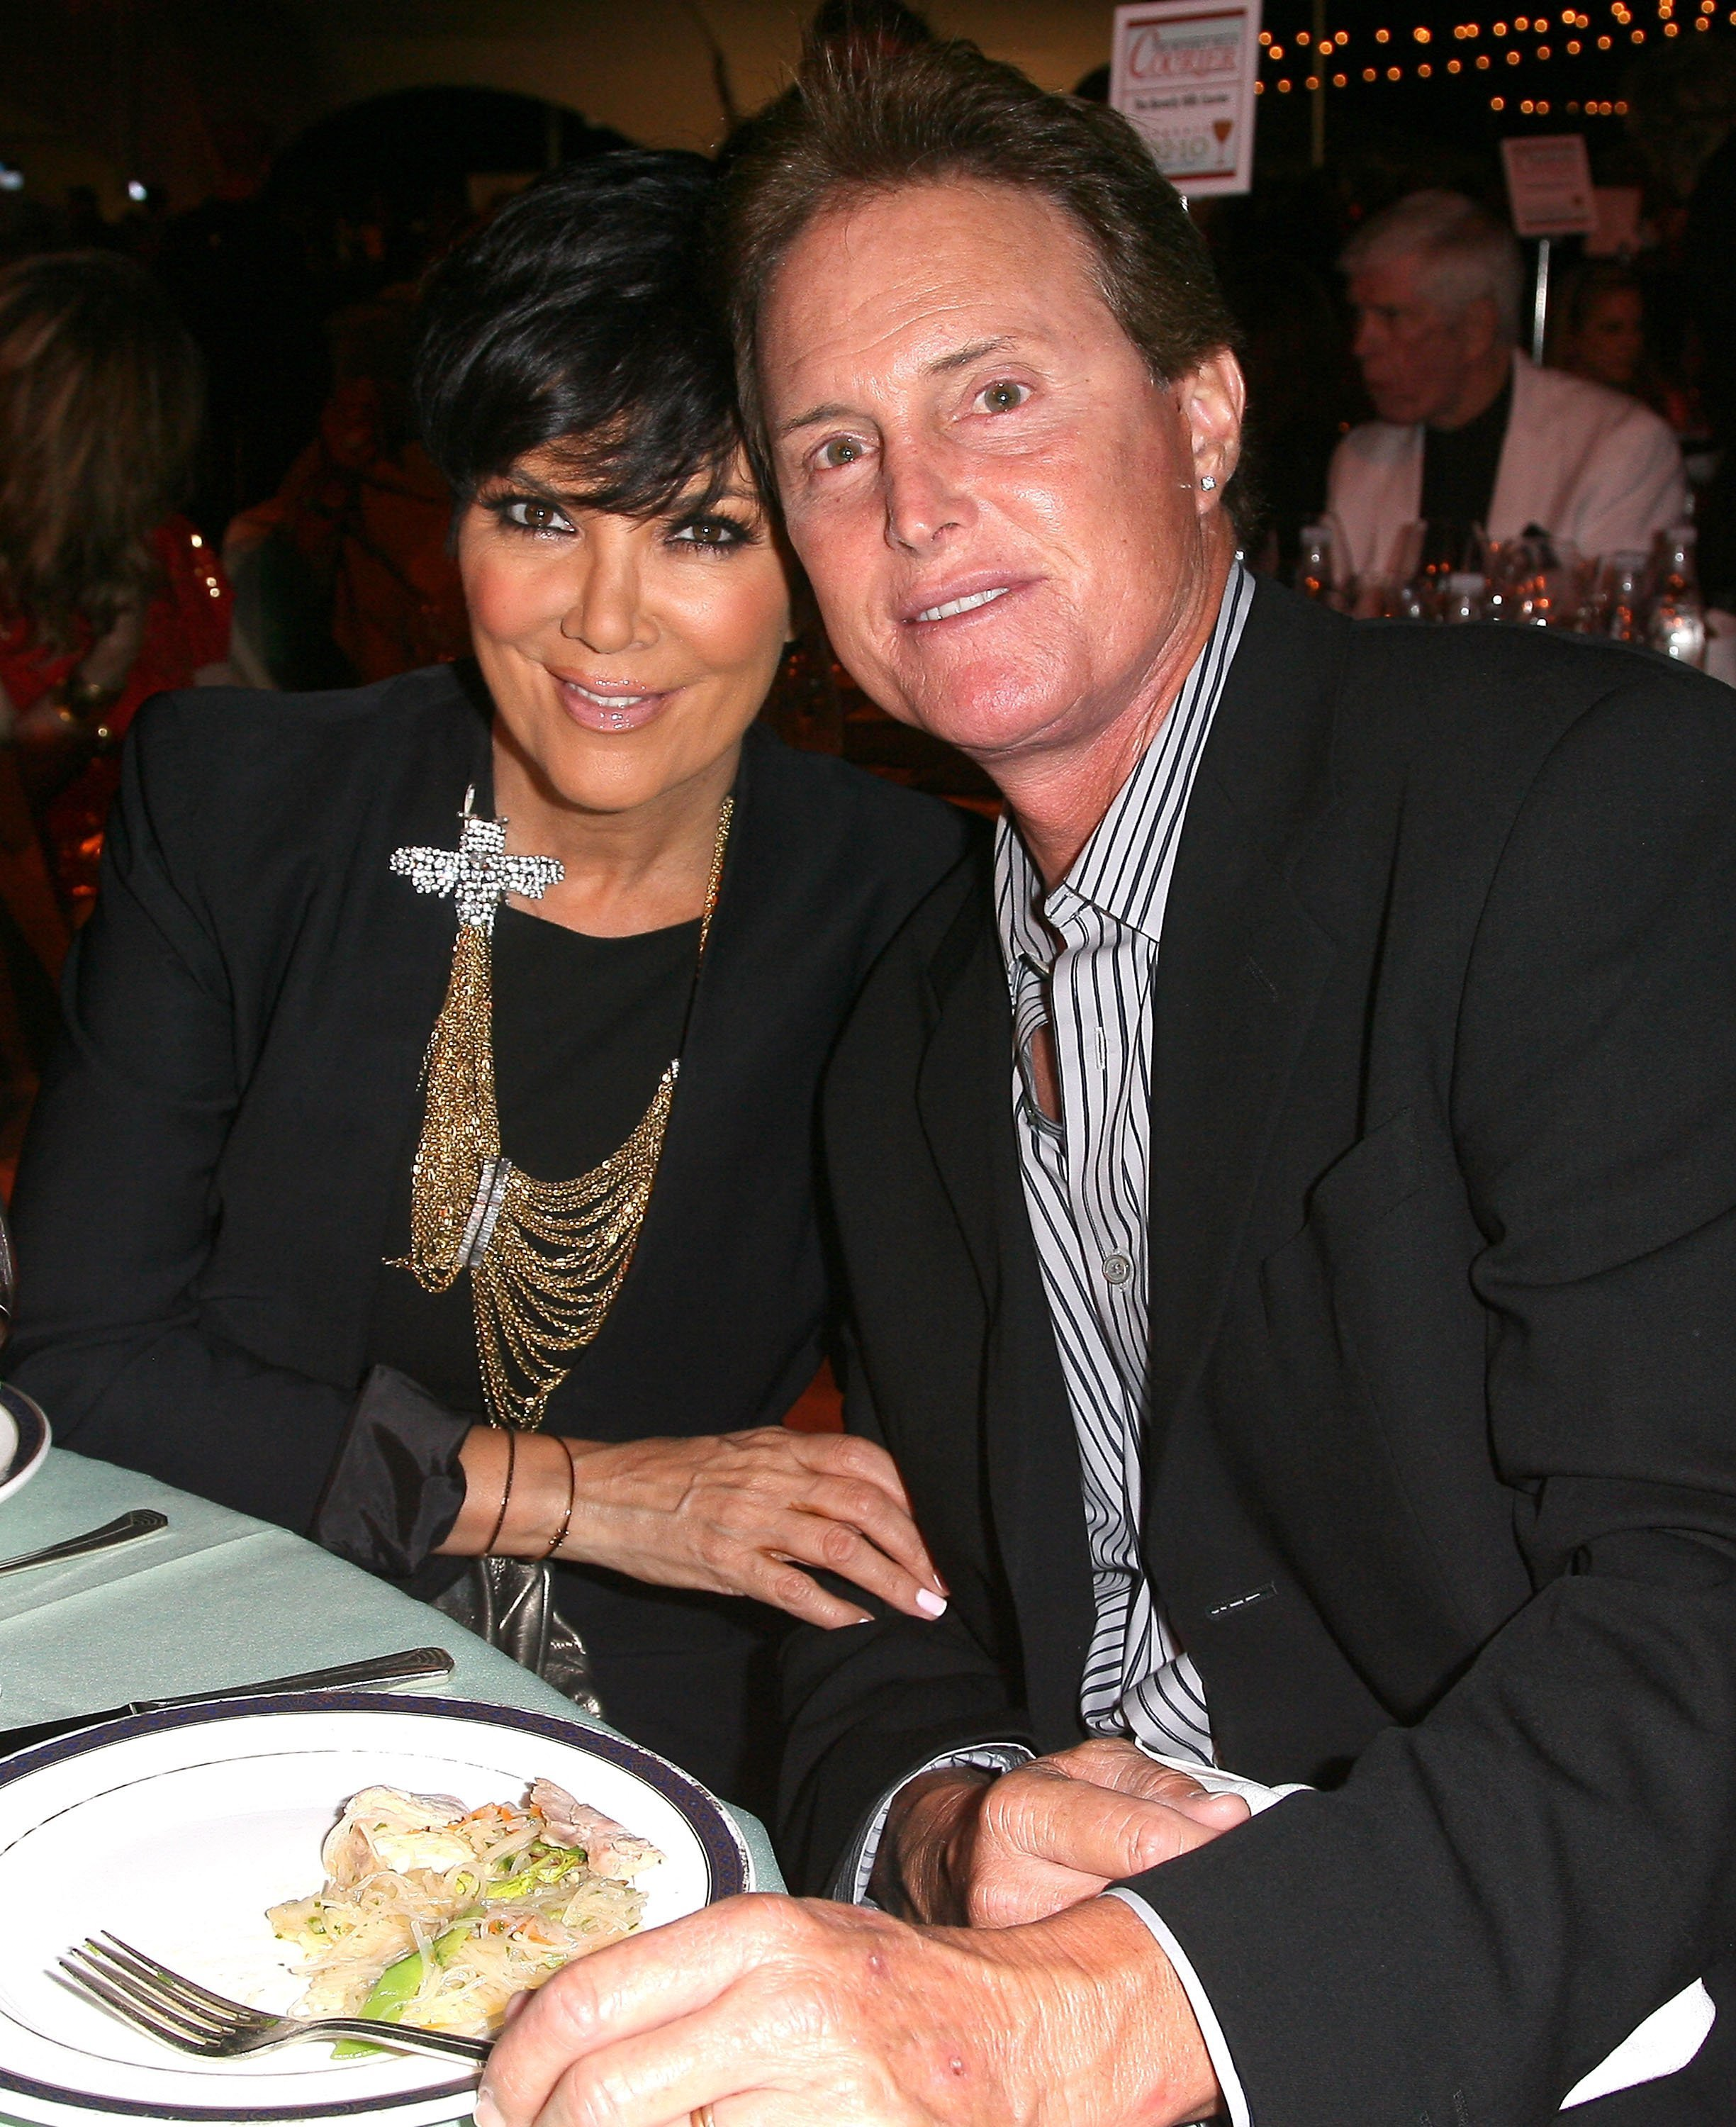 Kris Jenner and Caitlyn, formerly Bruce Jenner attending a wine and food festival in September 2010. | Photo: Getty Images